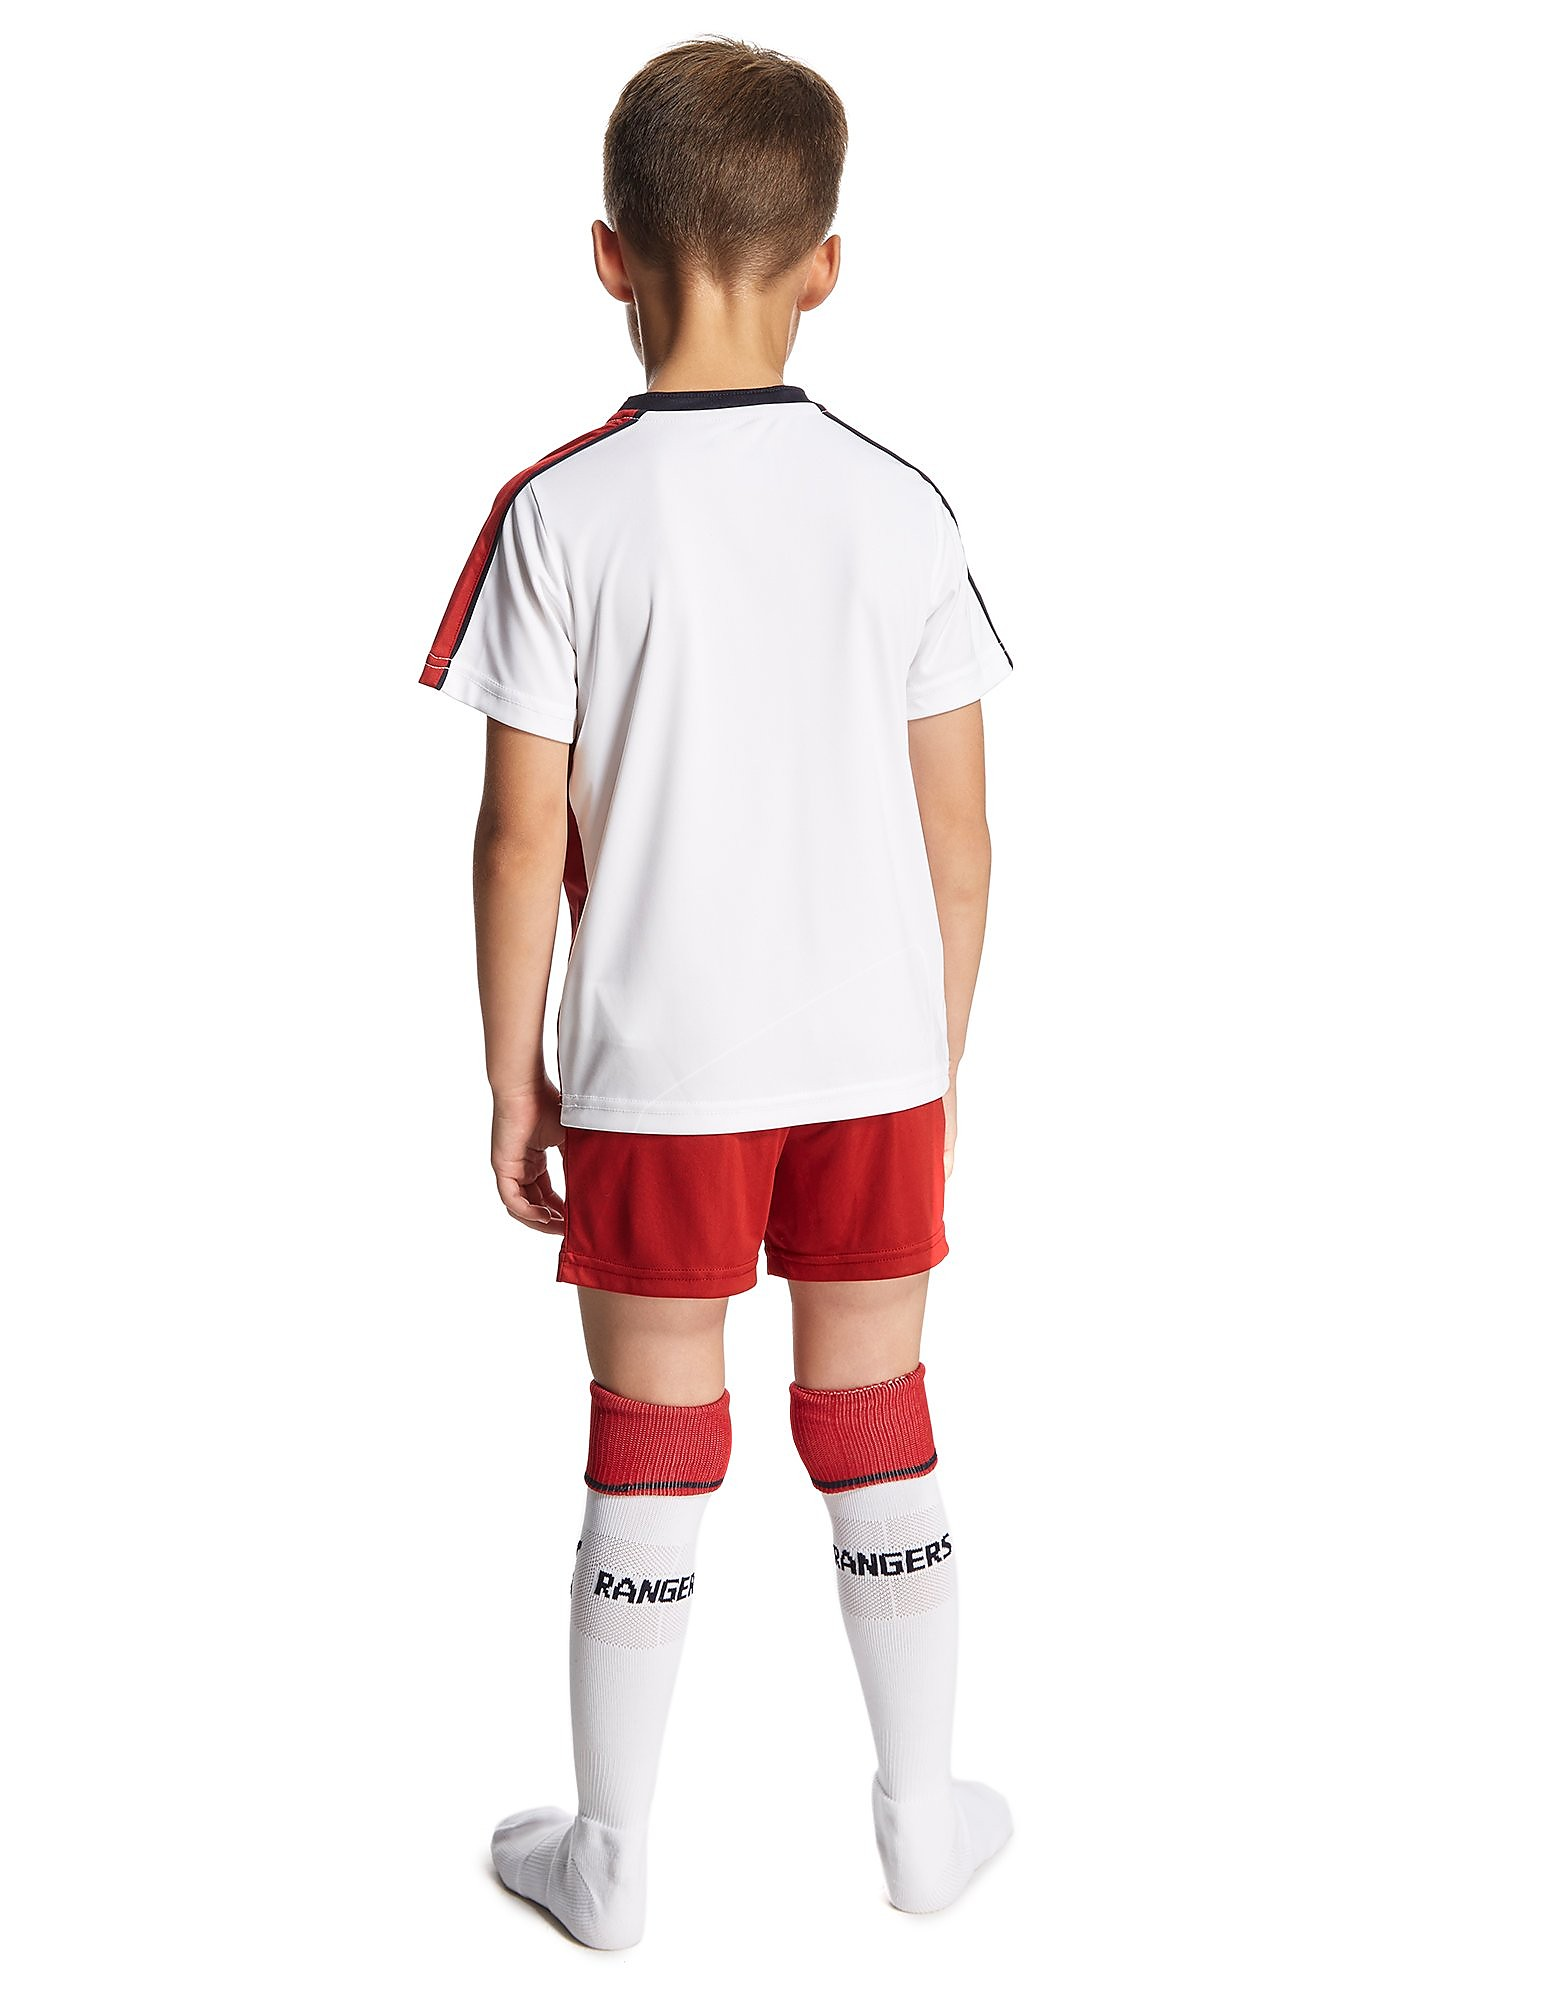 PUMA Rangers FC 2016/17 Away Kit Children